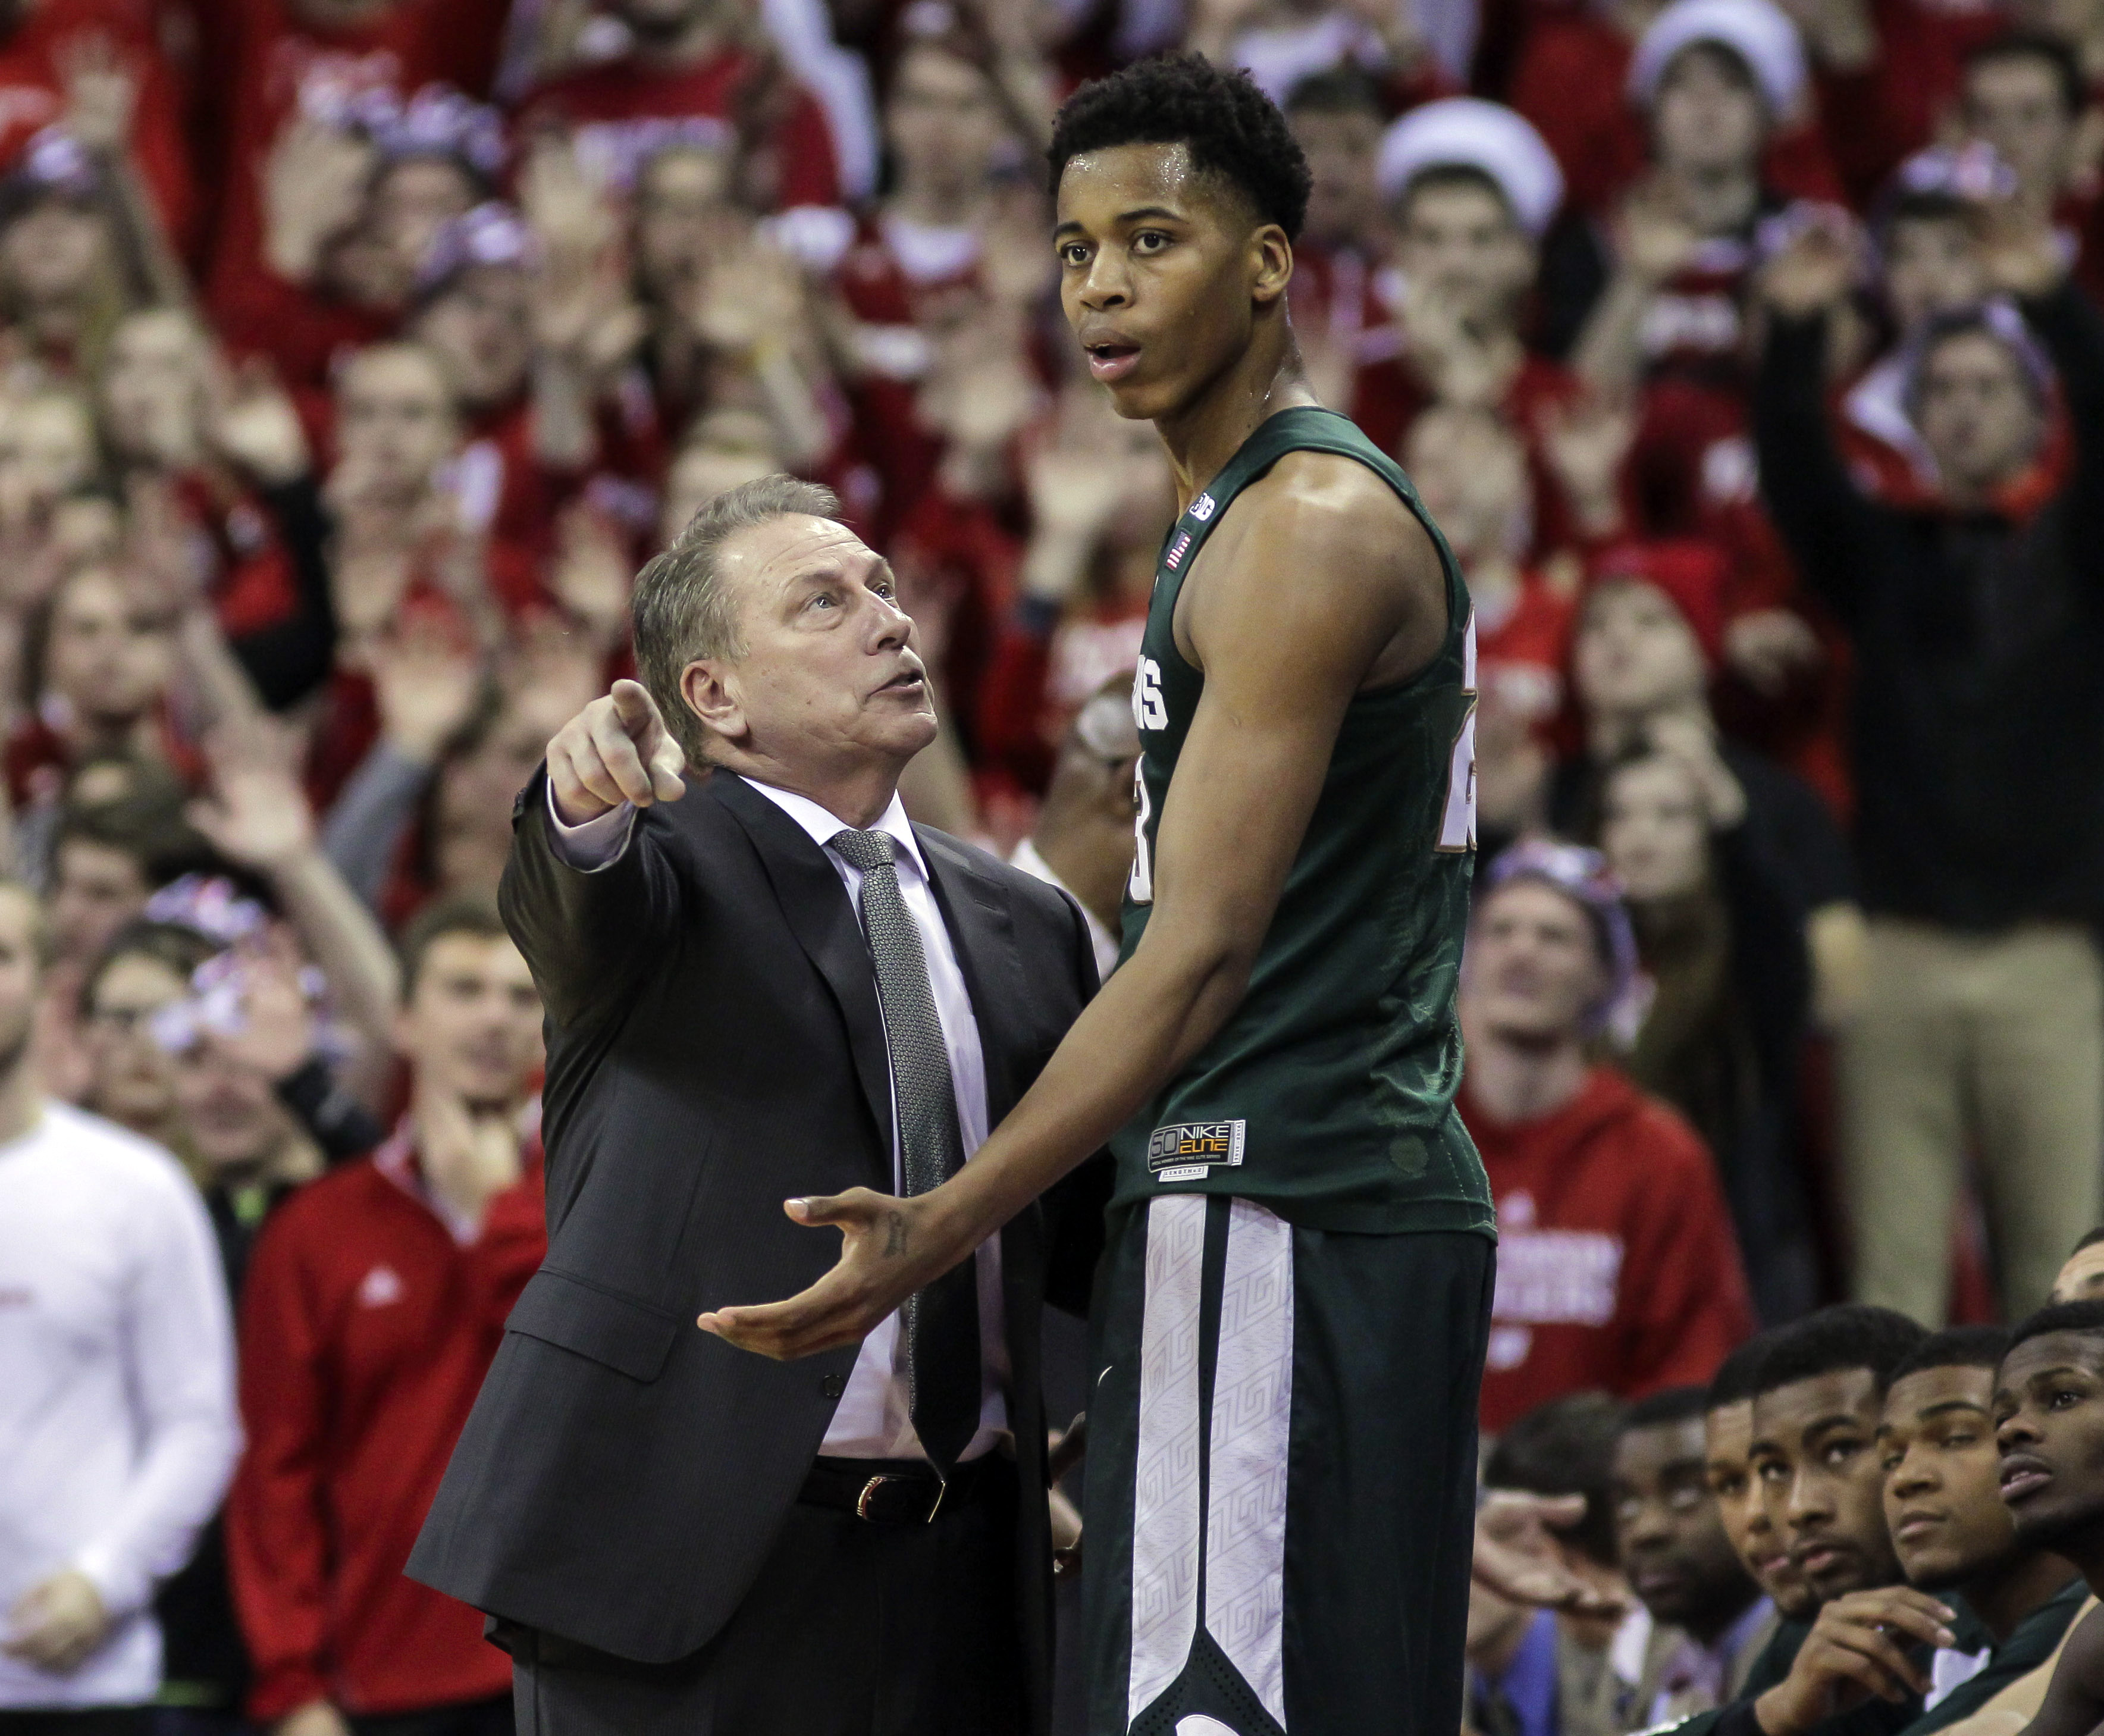 FILE - In this Jan. 17, 2016, file photo, Michigan State coach Tom Izzo talks with Deyonta Davis during an NCAA college basketball game against Wisconsin, in Madison, Wisc. Michigan State coach Tom Izzo says he will assist freshman Deyonta Davis as he con